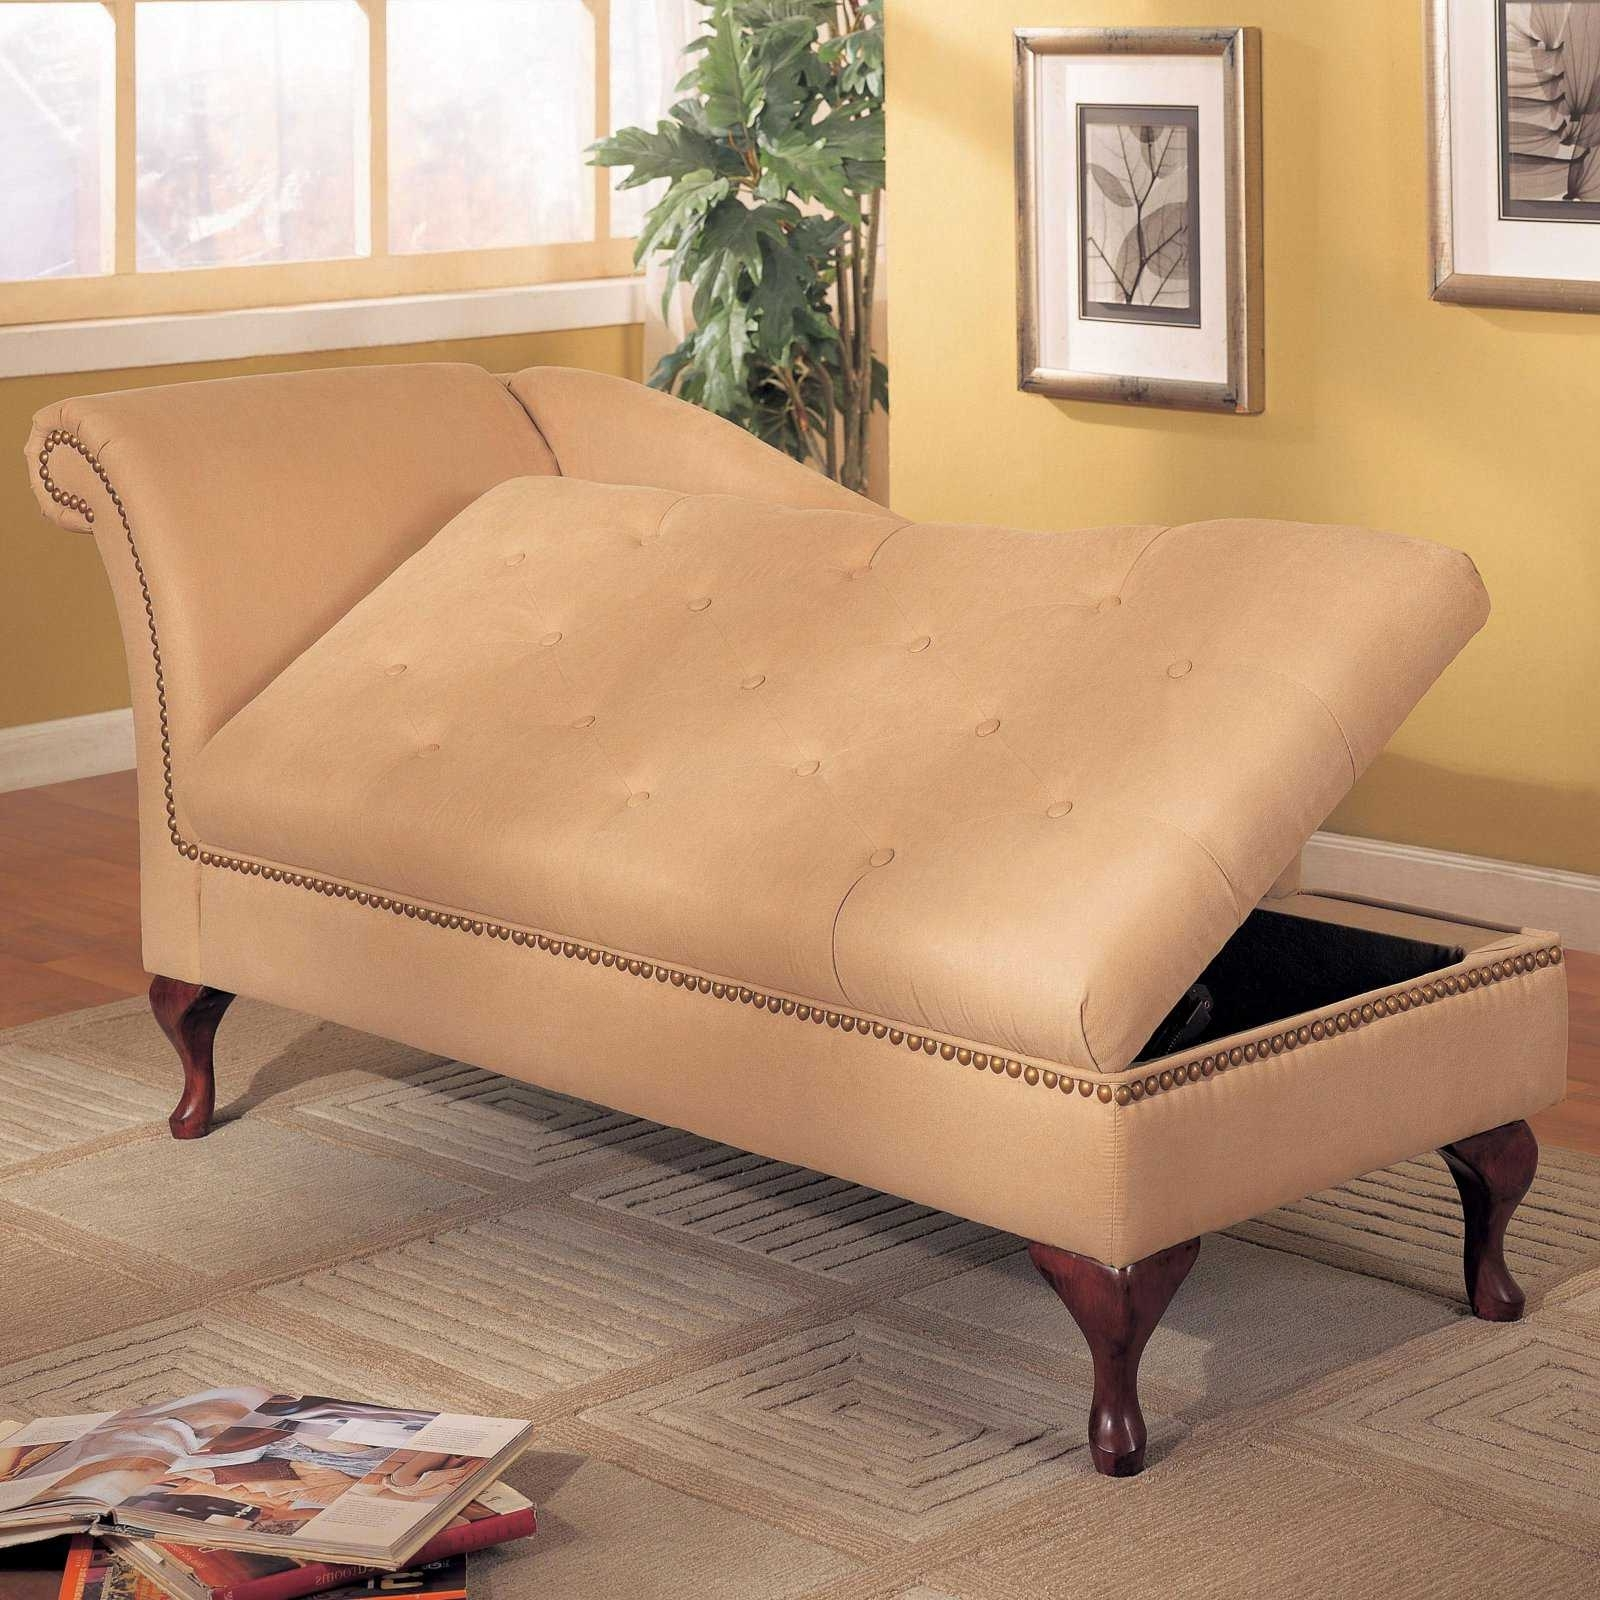 Small Chaise Lounge – Rpisite Intended For Recent Small Chaise Lounge Chairs For Bedroom (View 9 of 15)